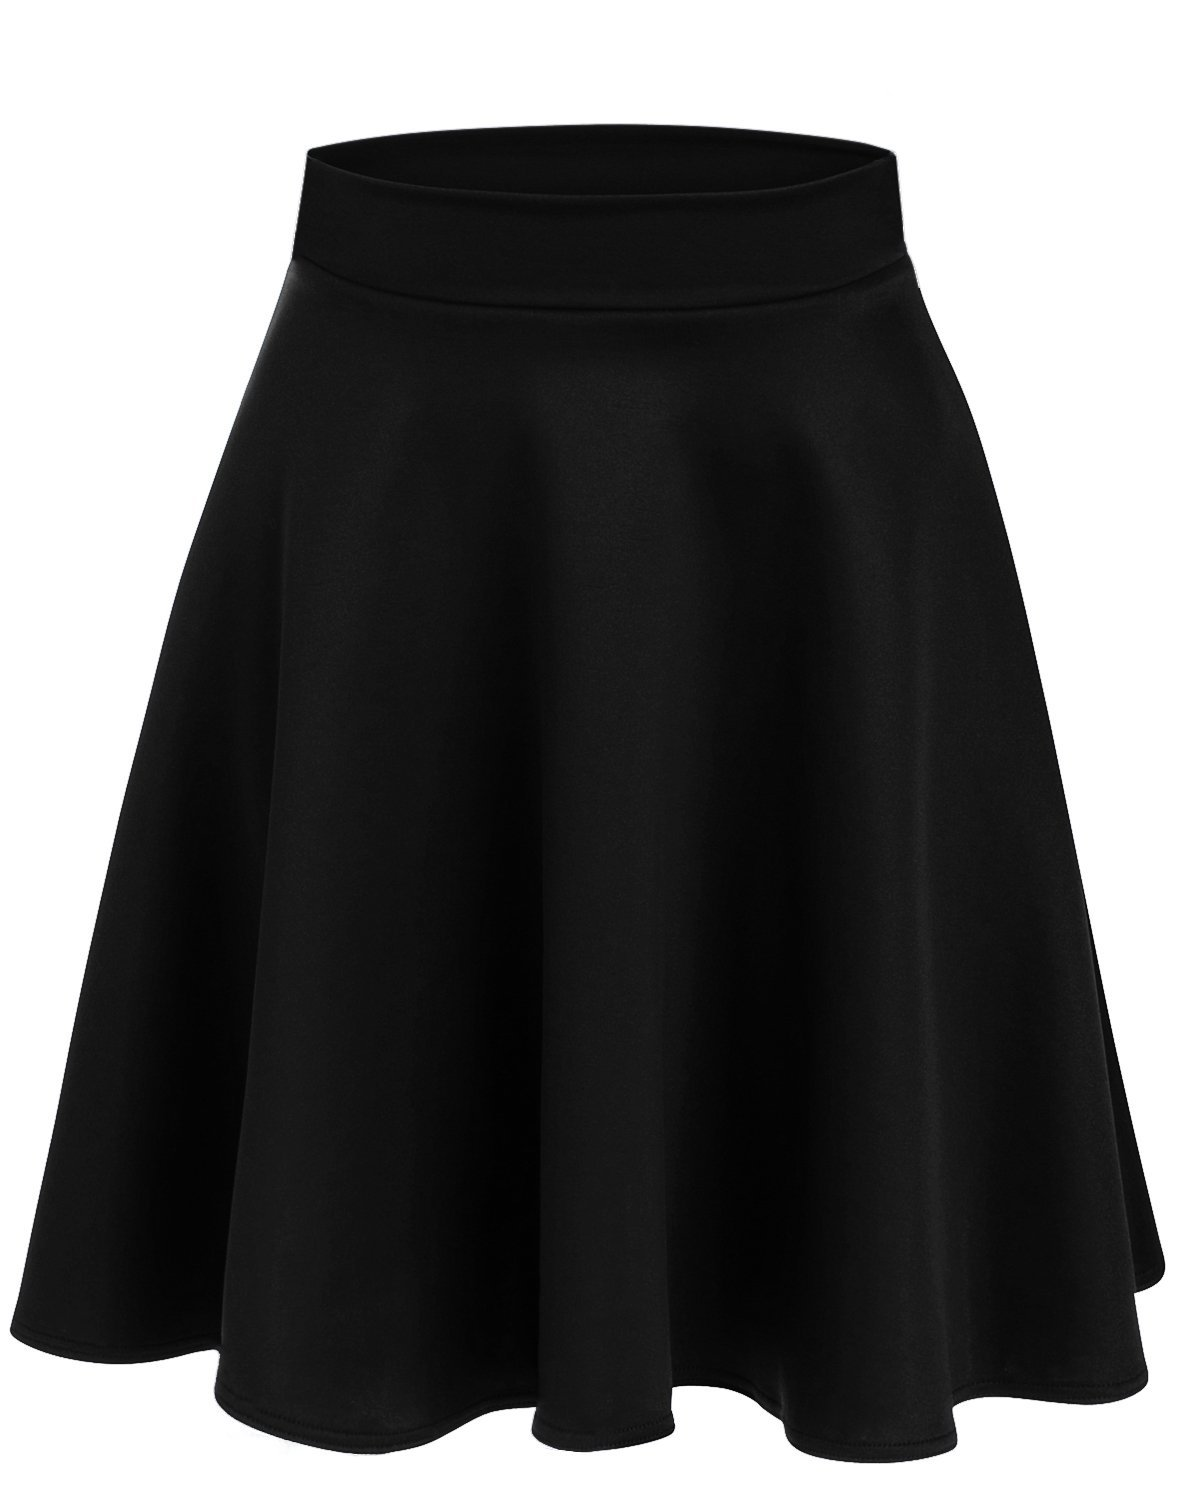 Simlu Women's Midi Skater Skirt Flared and Pleated Midi Skirt For Women  Made In USA, Black, 3X-Large